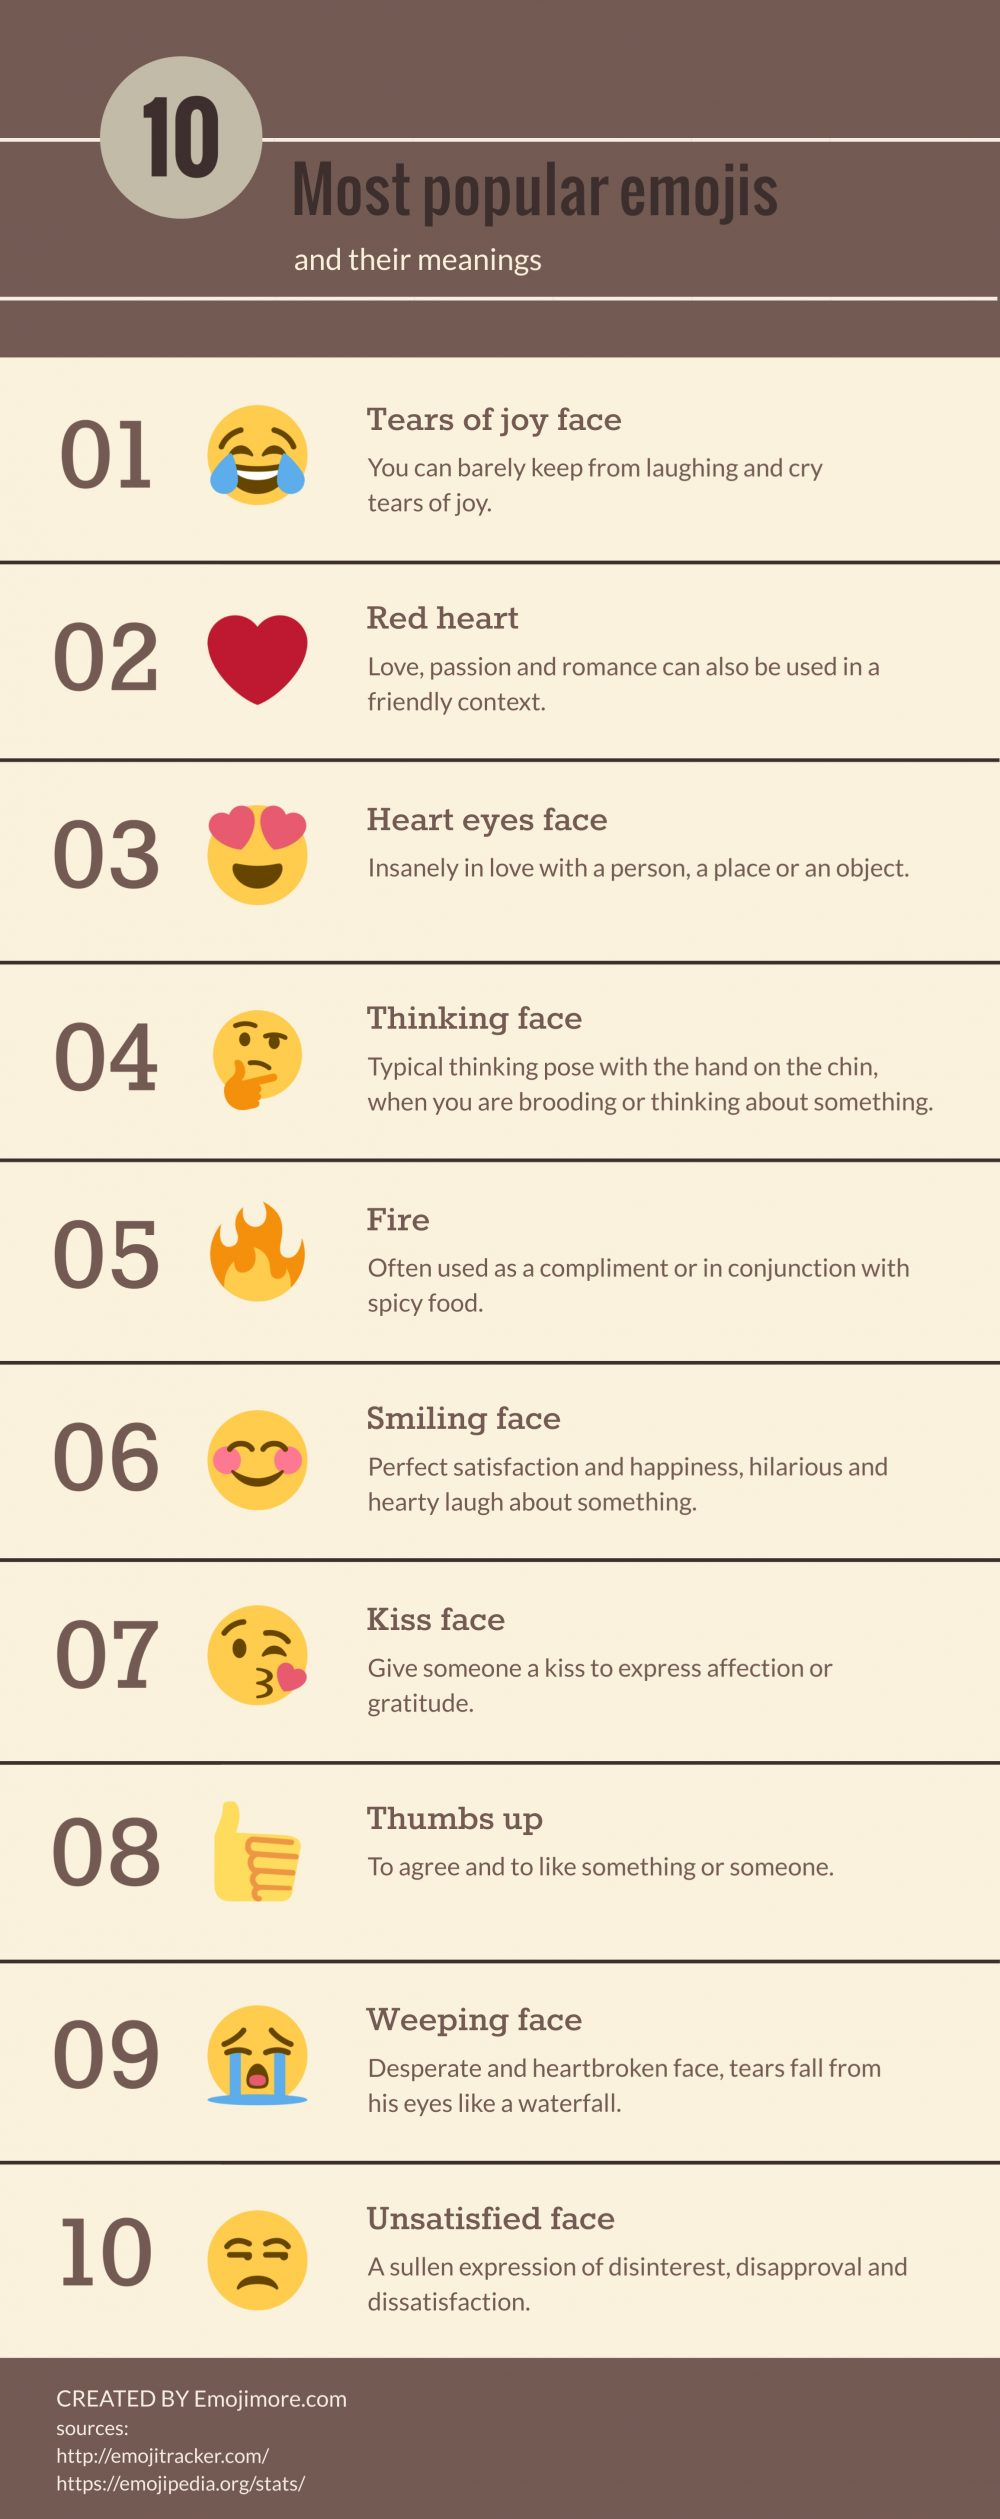 10 Most popular emojis infographic